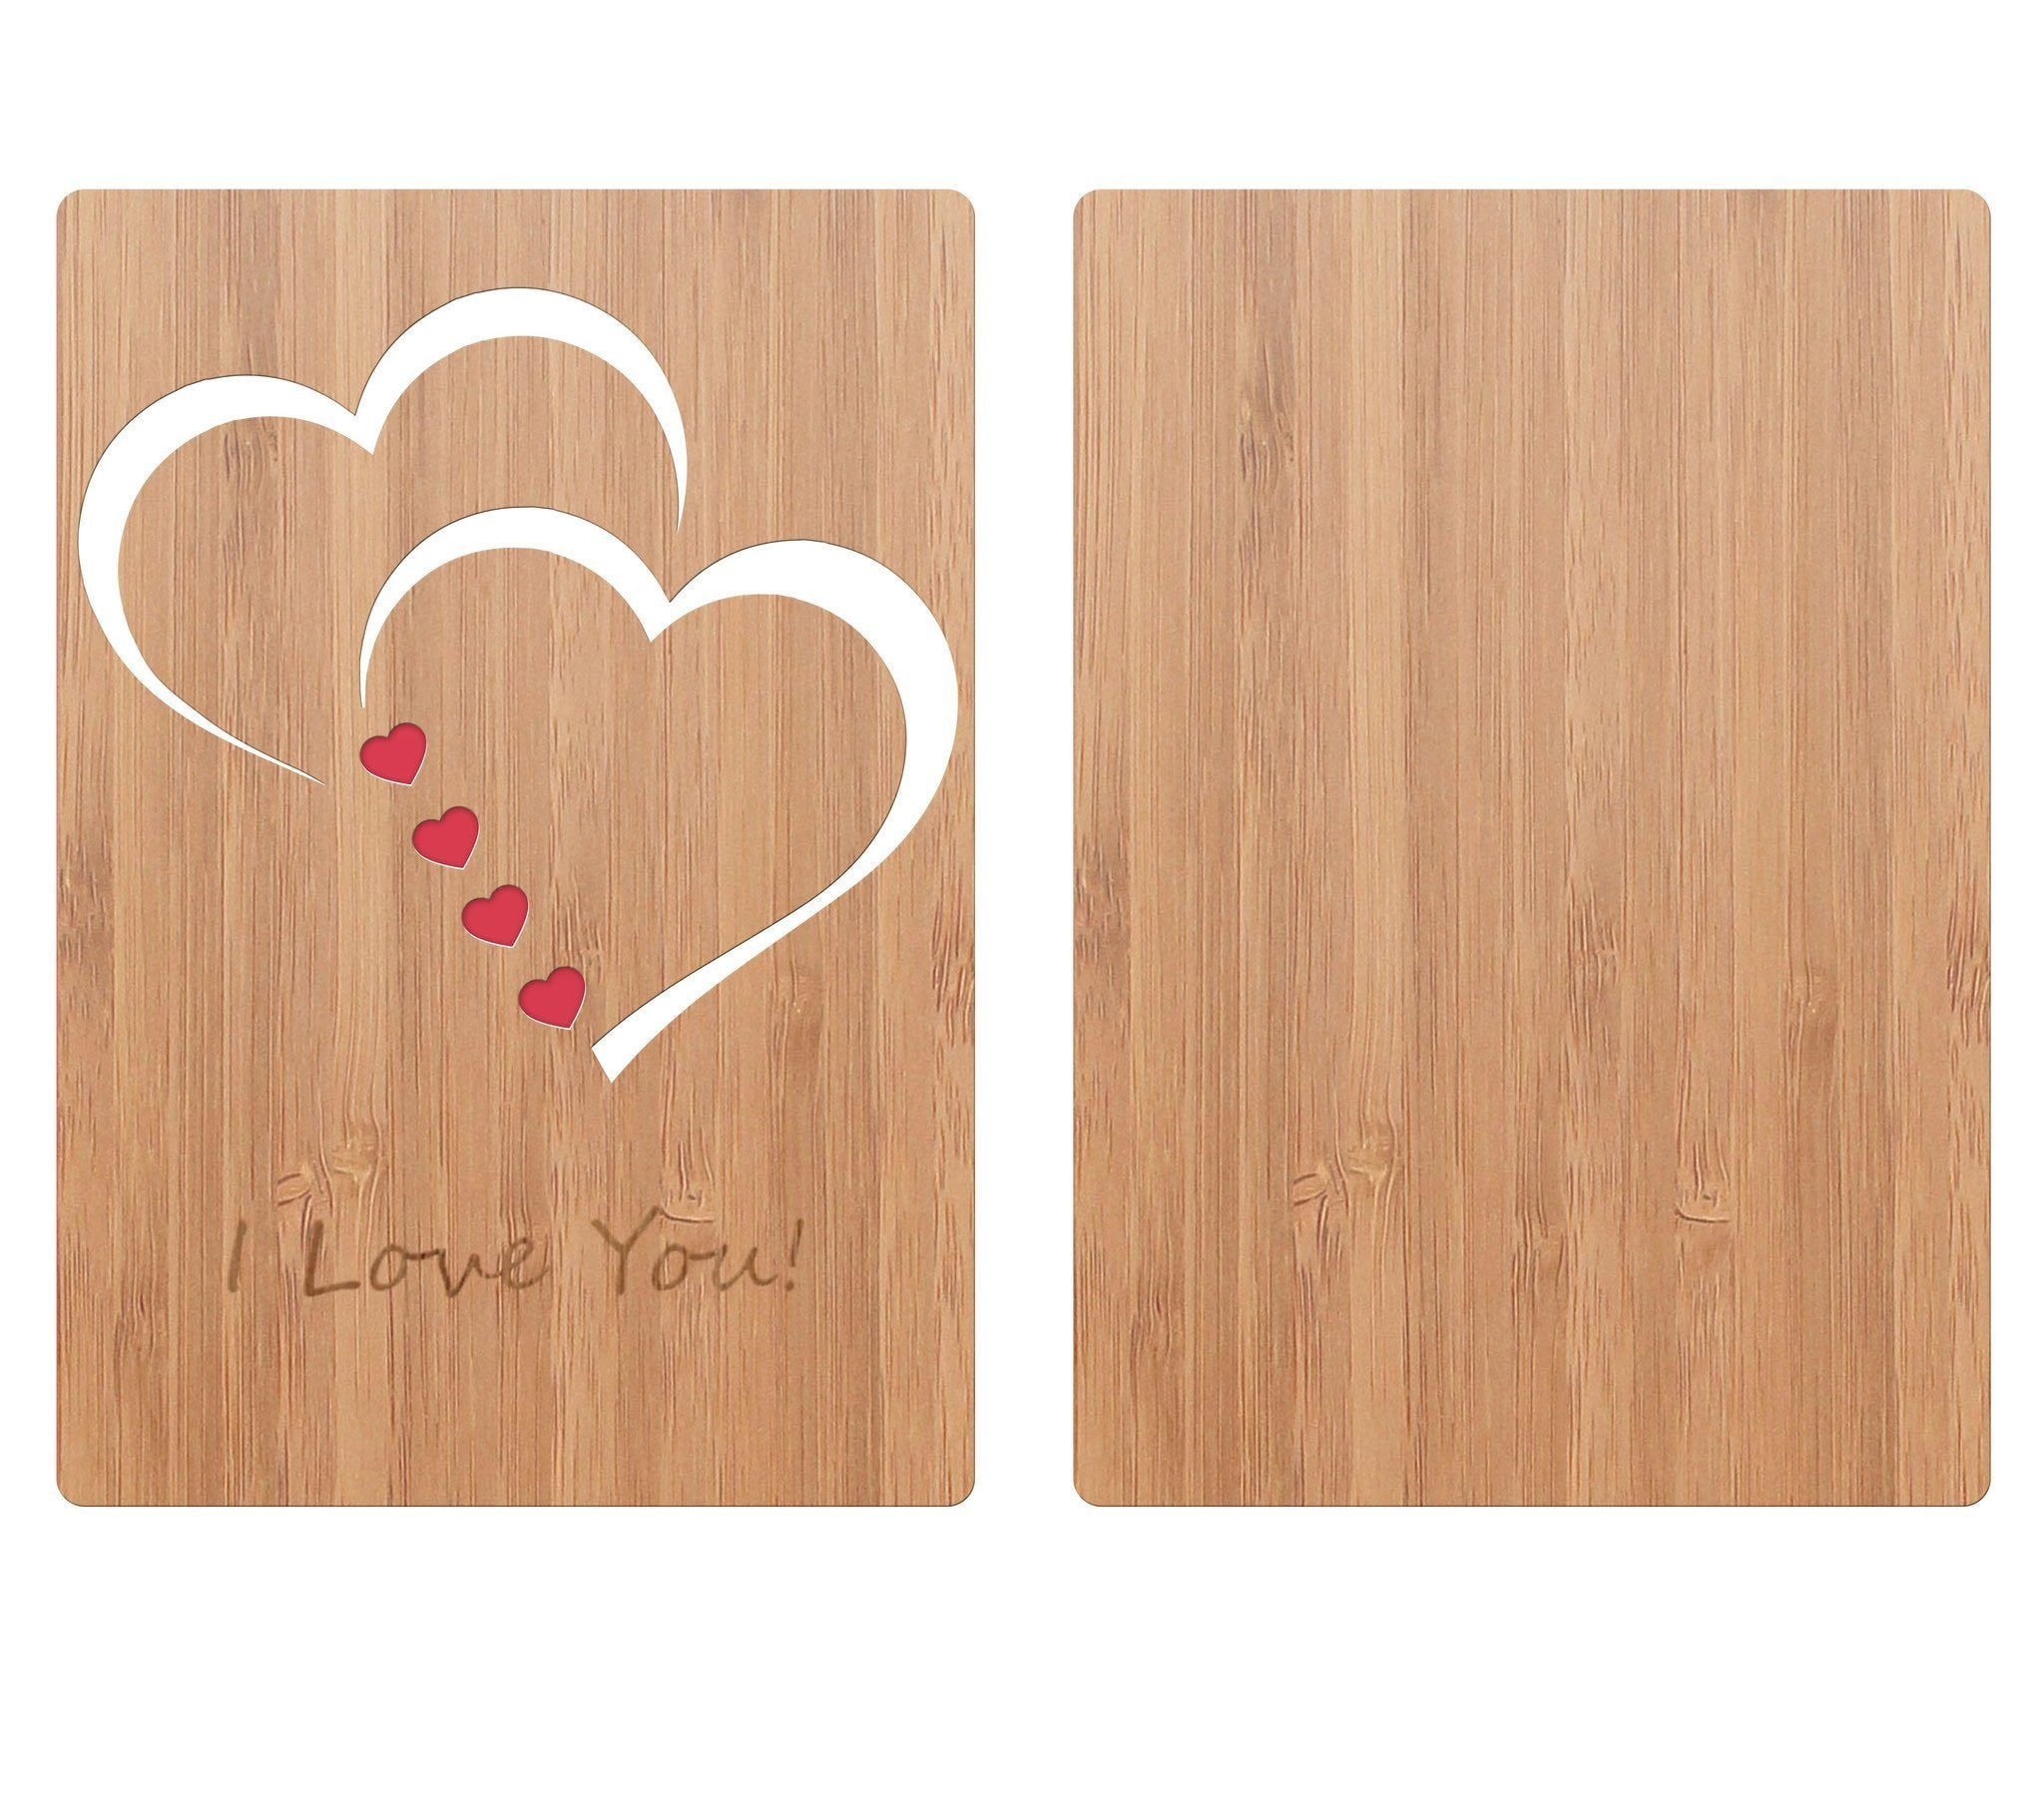 Classic hearts bamboo love card heartspace cards bamboo wood greeting card classic hearts love card back m4hsunfo Choice Image